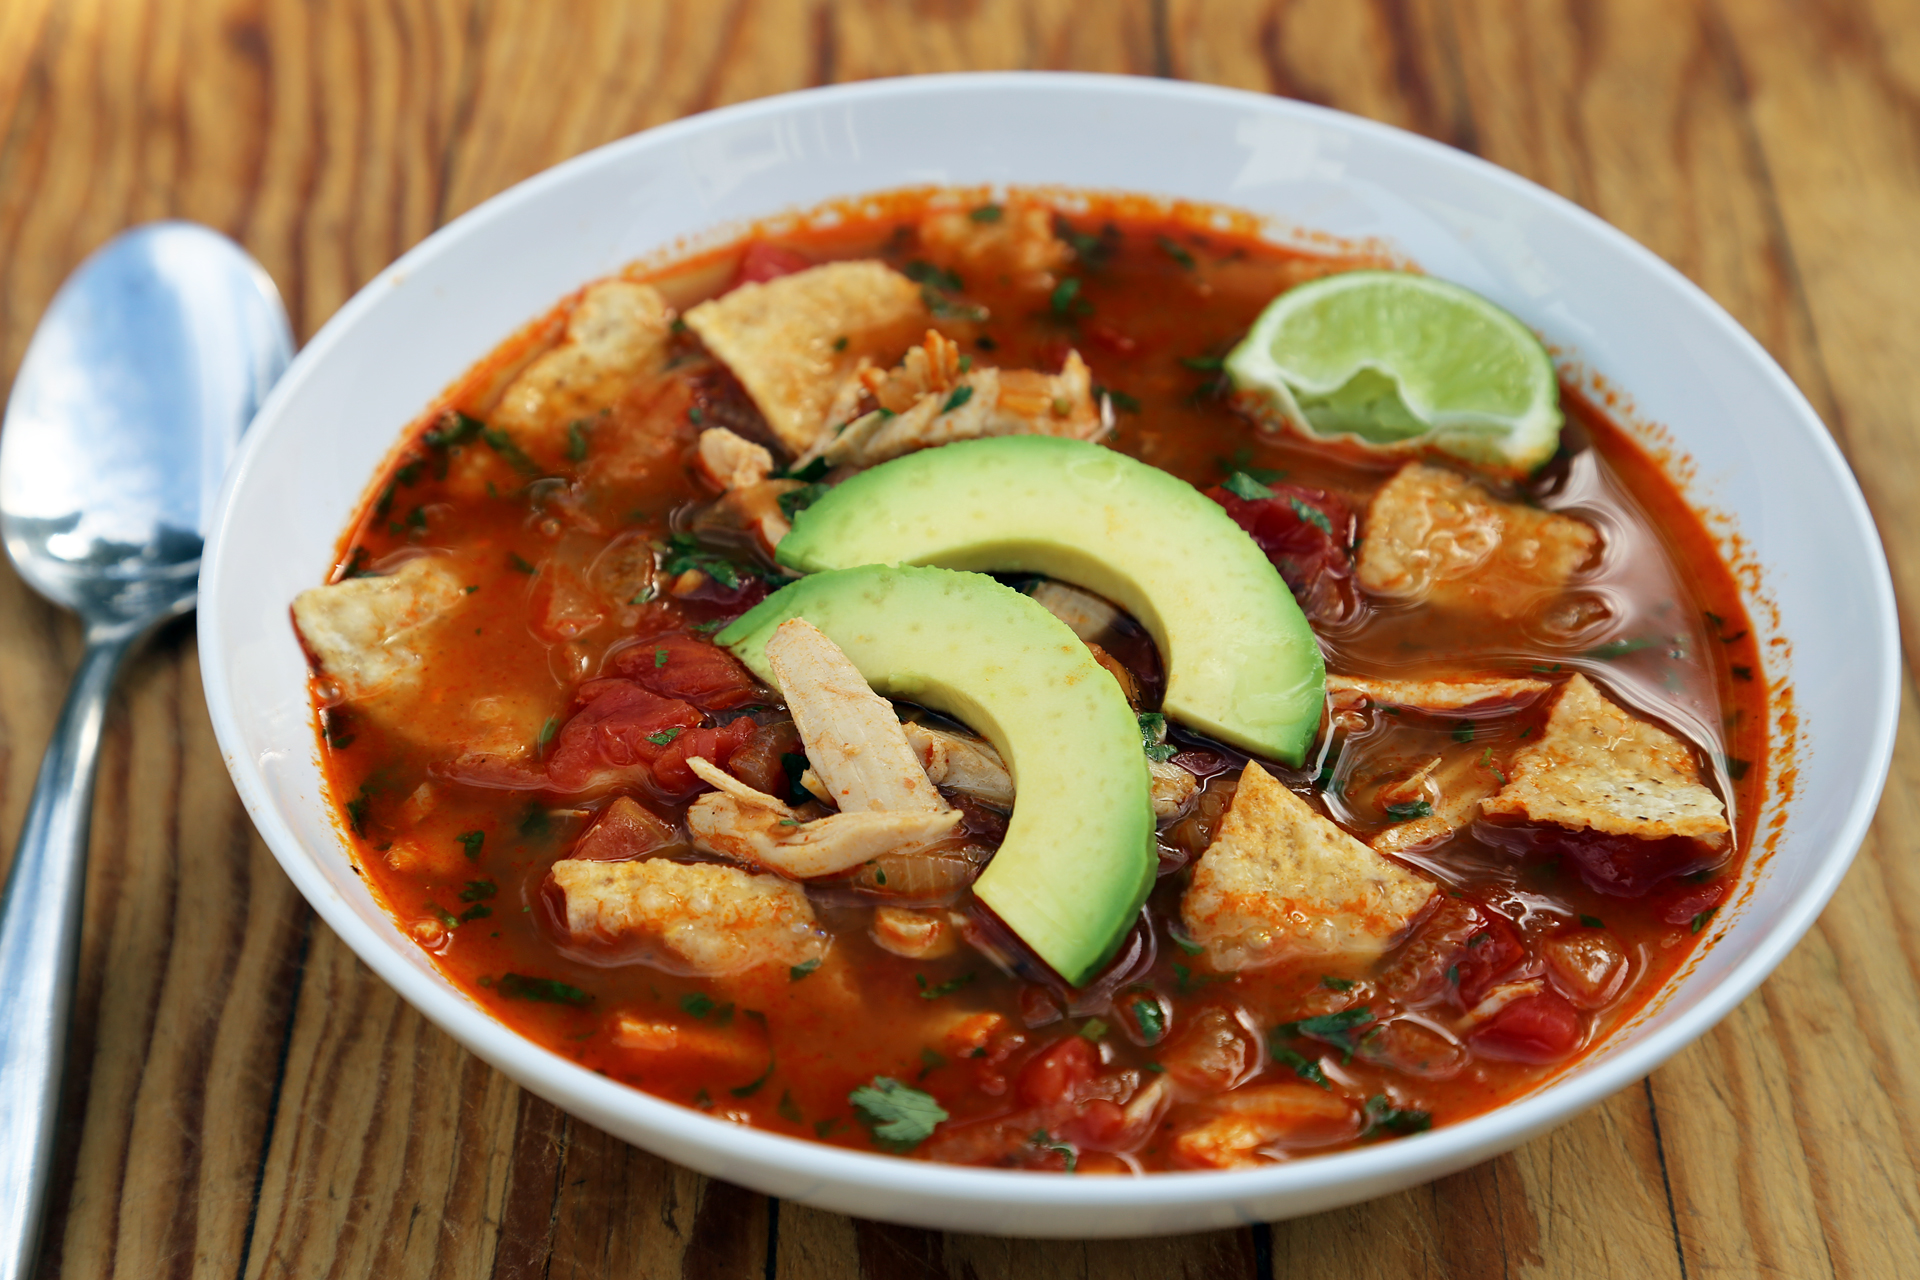 Serve bowlfuls, garnished with plenty of avocado, queso fresco, crushed tortilla chips and lime wedges on the side.